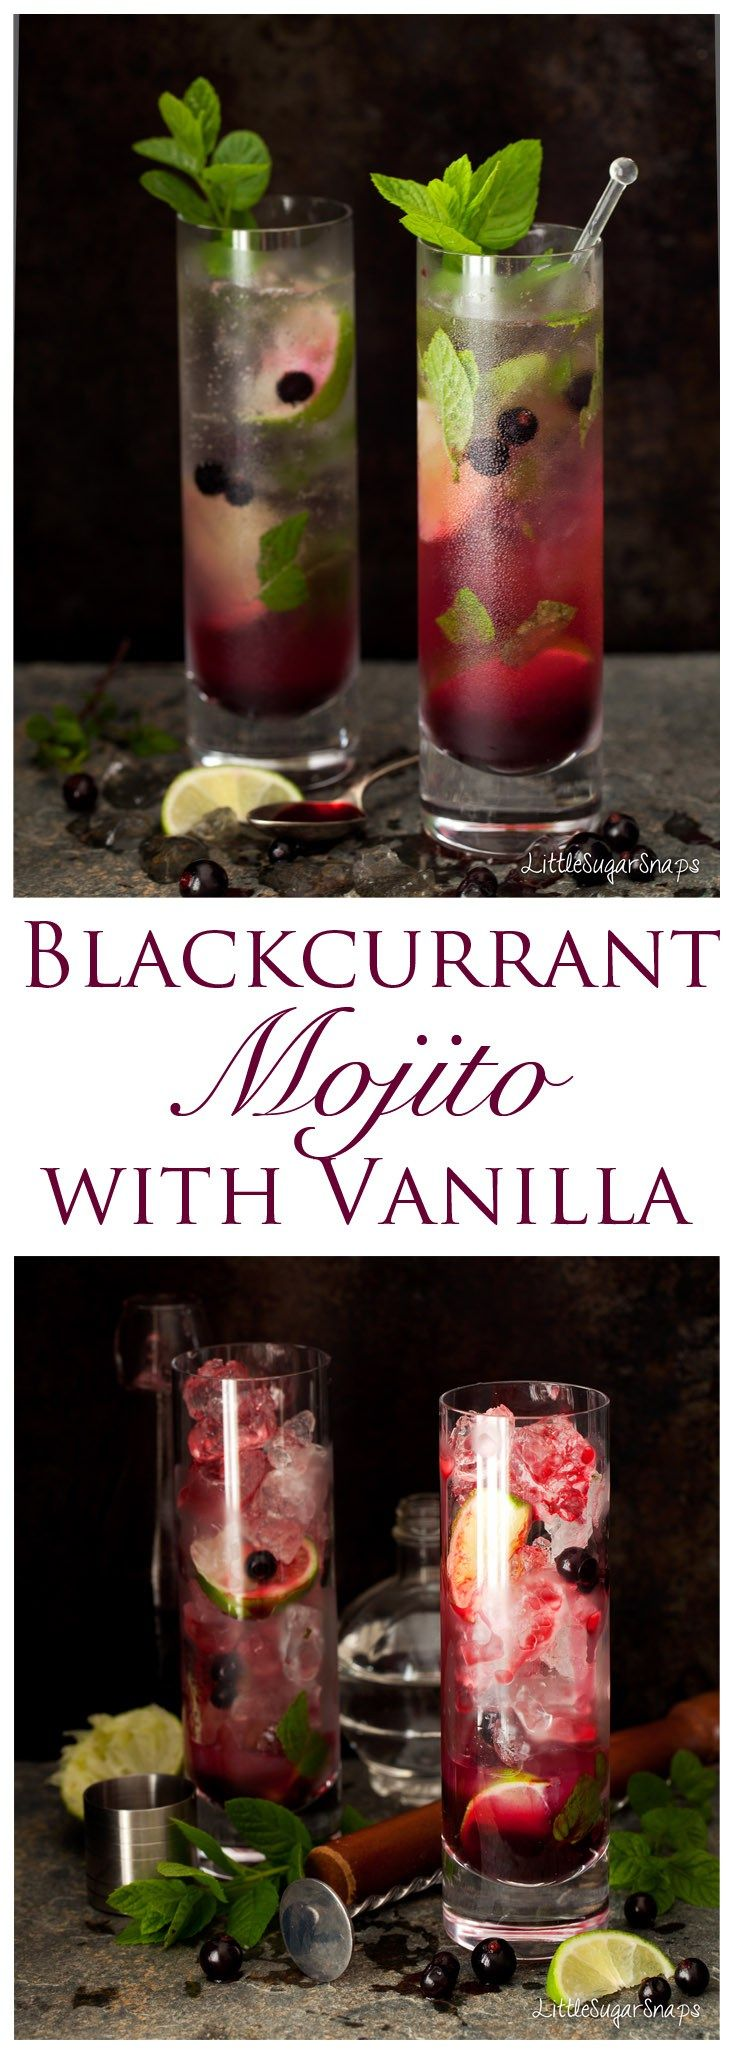 Blackcurrant Mojito:If you need a new twist on your usual cocktail repertoire try a Blackcurrant Mojito. It's fun. It's fruity. It's a classic Mojito but with attitude... and a hint of vanilla